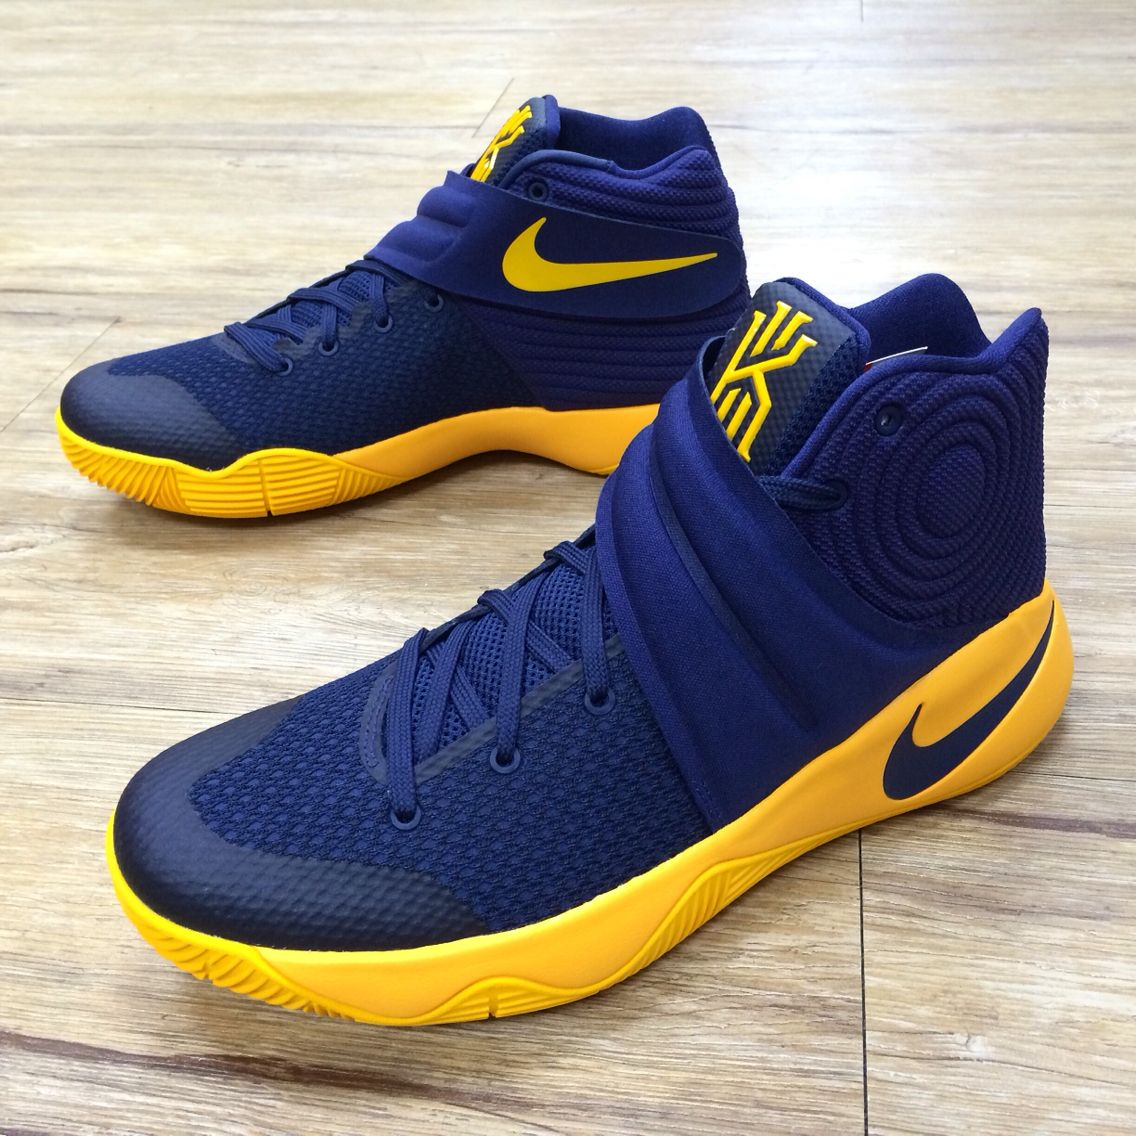 wholesale dealer e40d9 767b2 Nike Kyrie 2 EP II Irving Cavs Playoffs PE Navy Gold Mens Basketball  820537-447